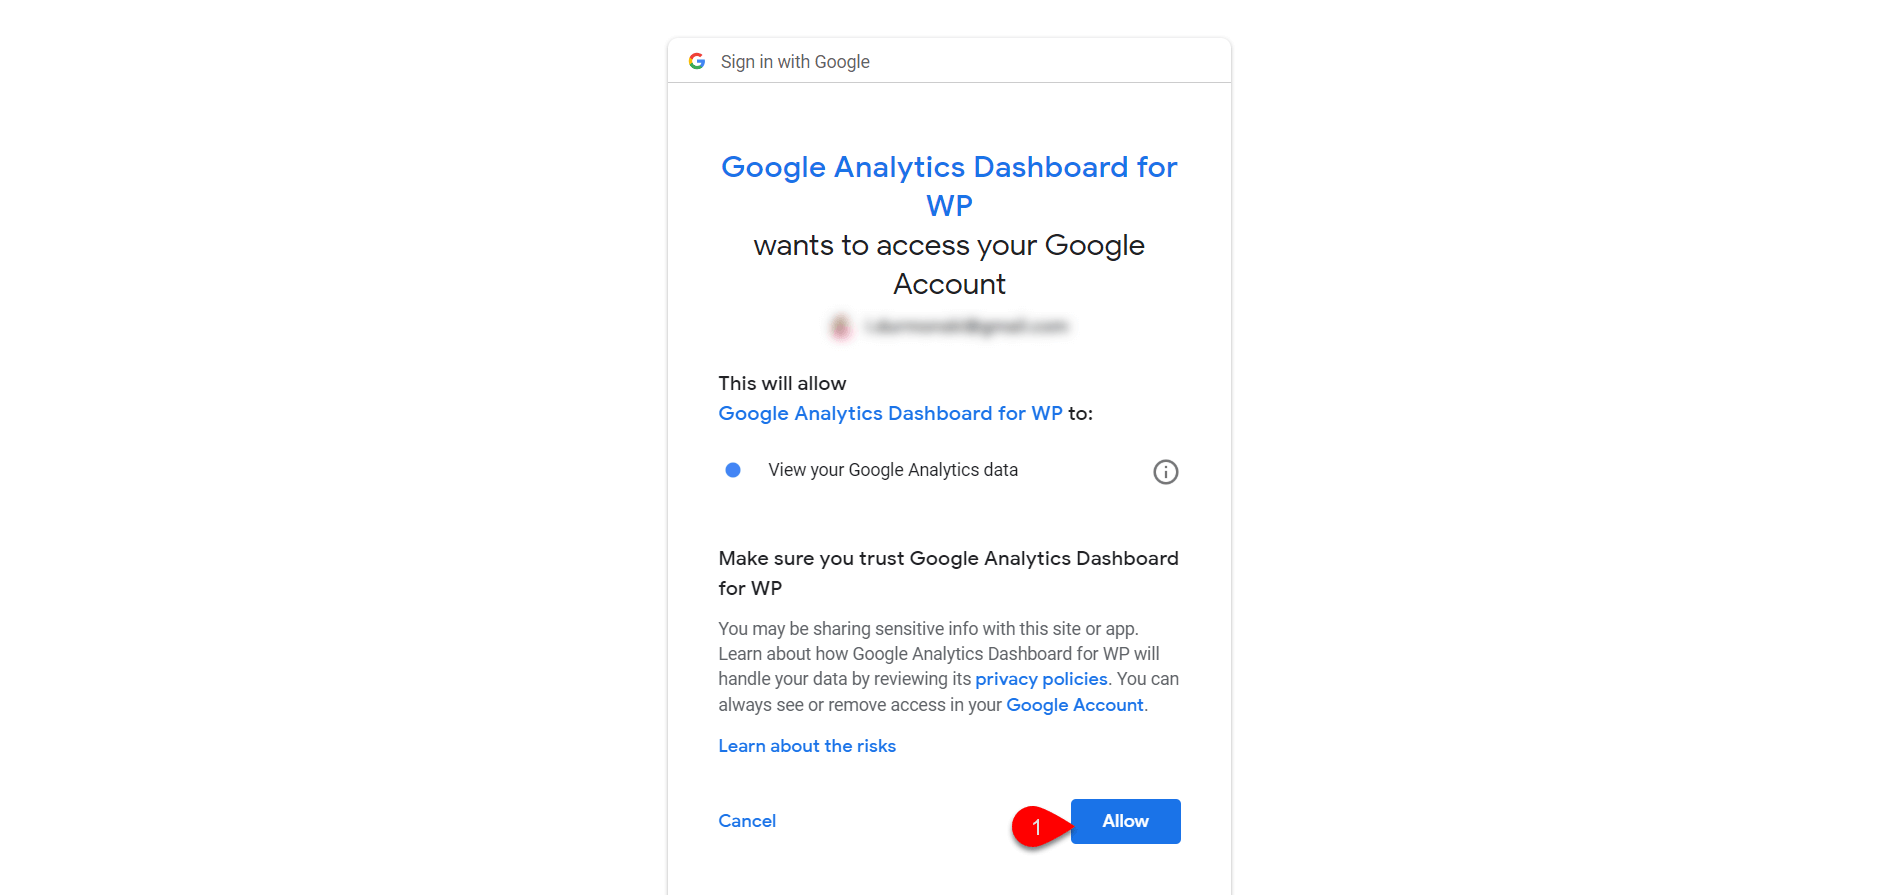 Configure Google Analytics Dashboard for WP 5